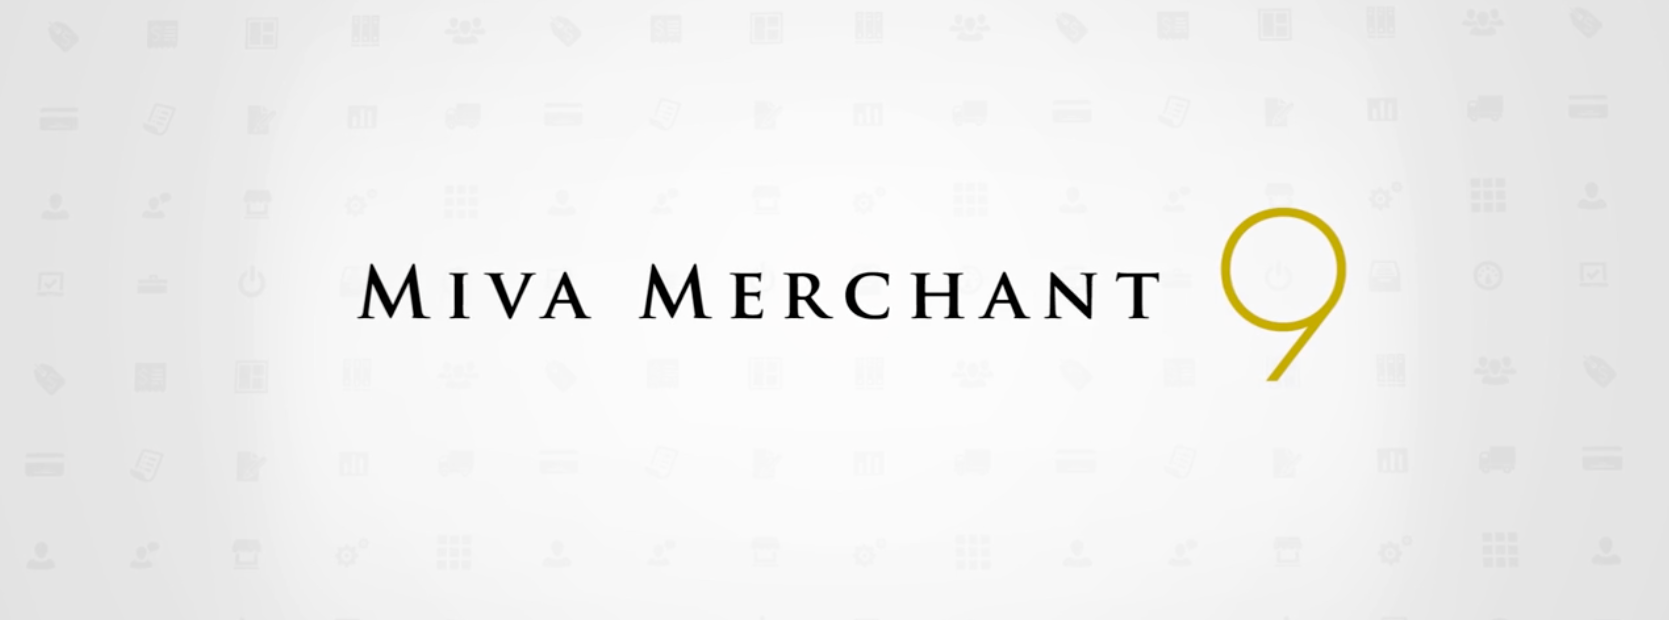 Webinar: Get To Know The New Miva Merchant 9